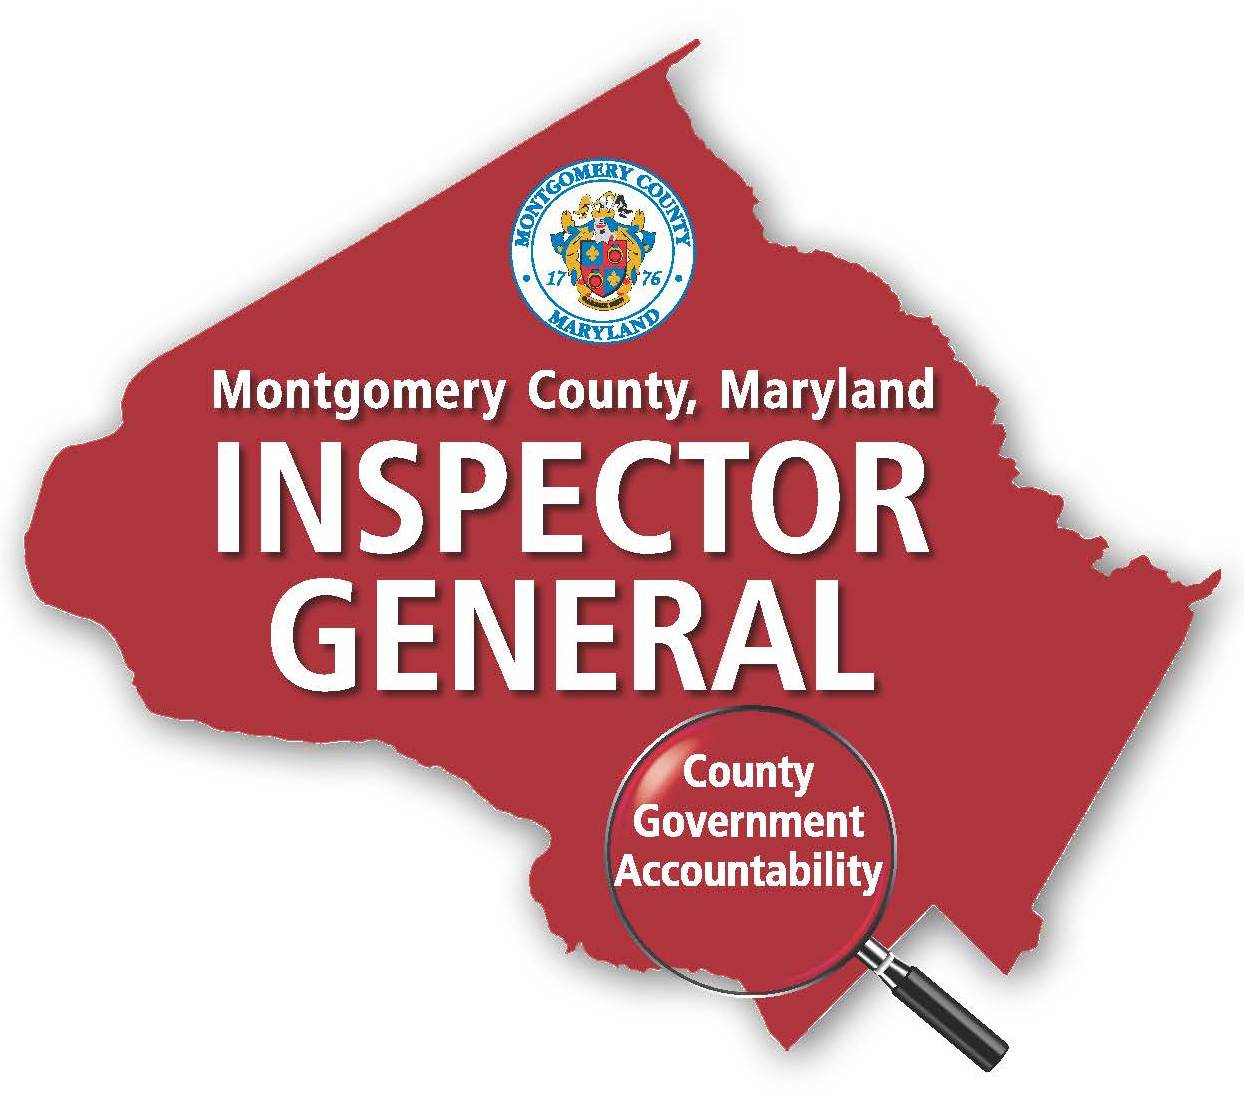 Report Fraud, Waste, or Abuse Related to County Government Activities - Call the OIG hotline @ 240 777 7644, or e-mail ig@montgomerycountymd.gov